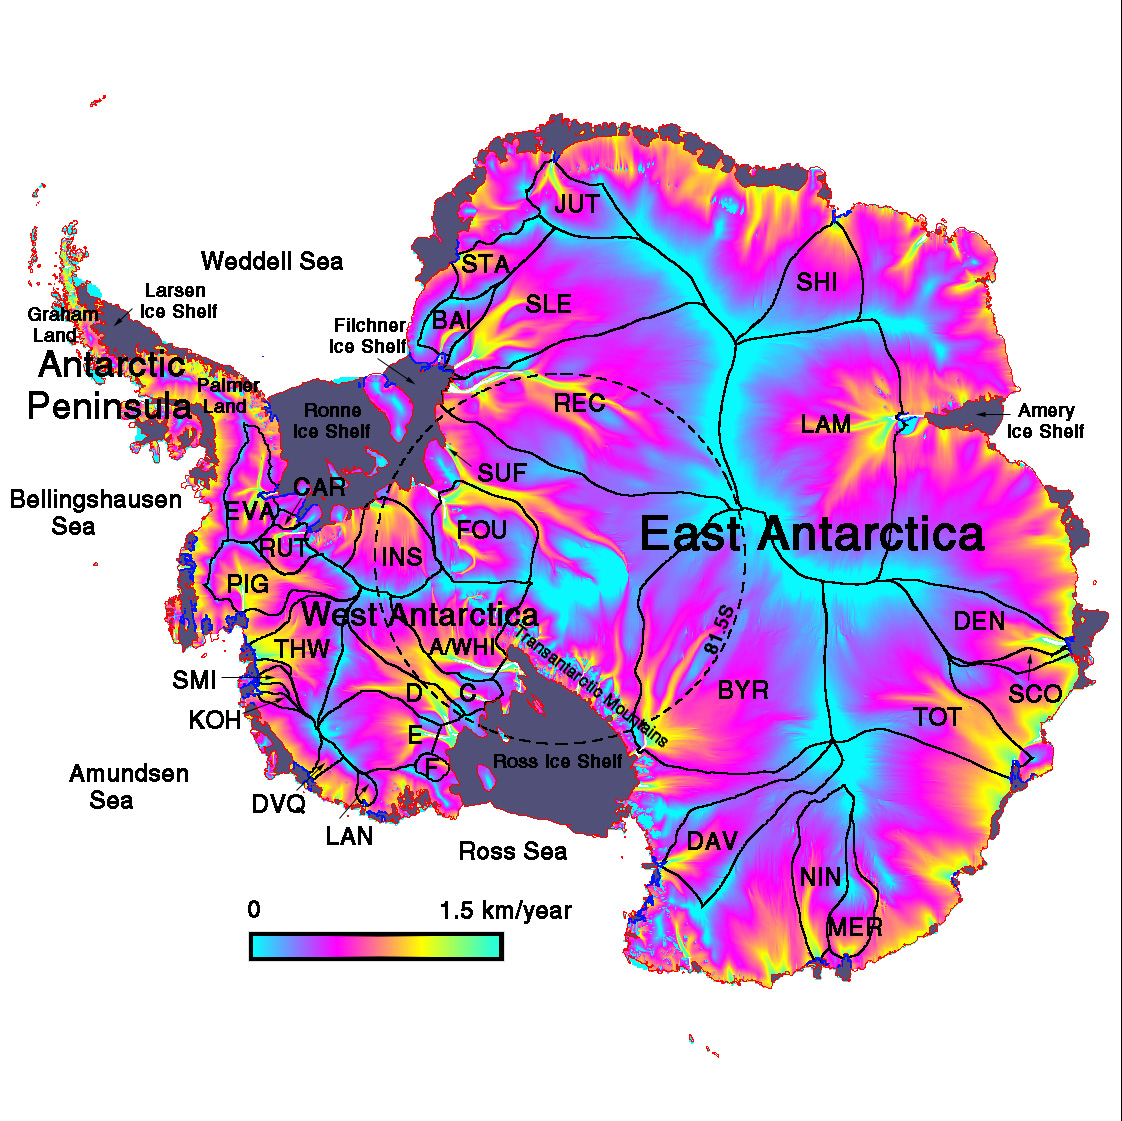 Southern Ocean Warming Impact On Antarctic Ice Sheet And Global - 4 oceans names